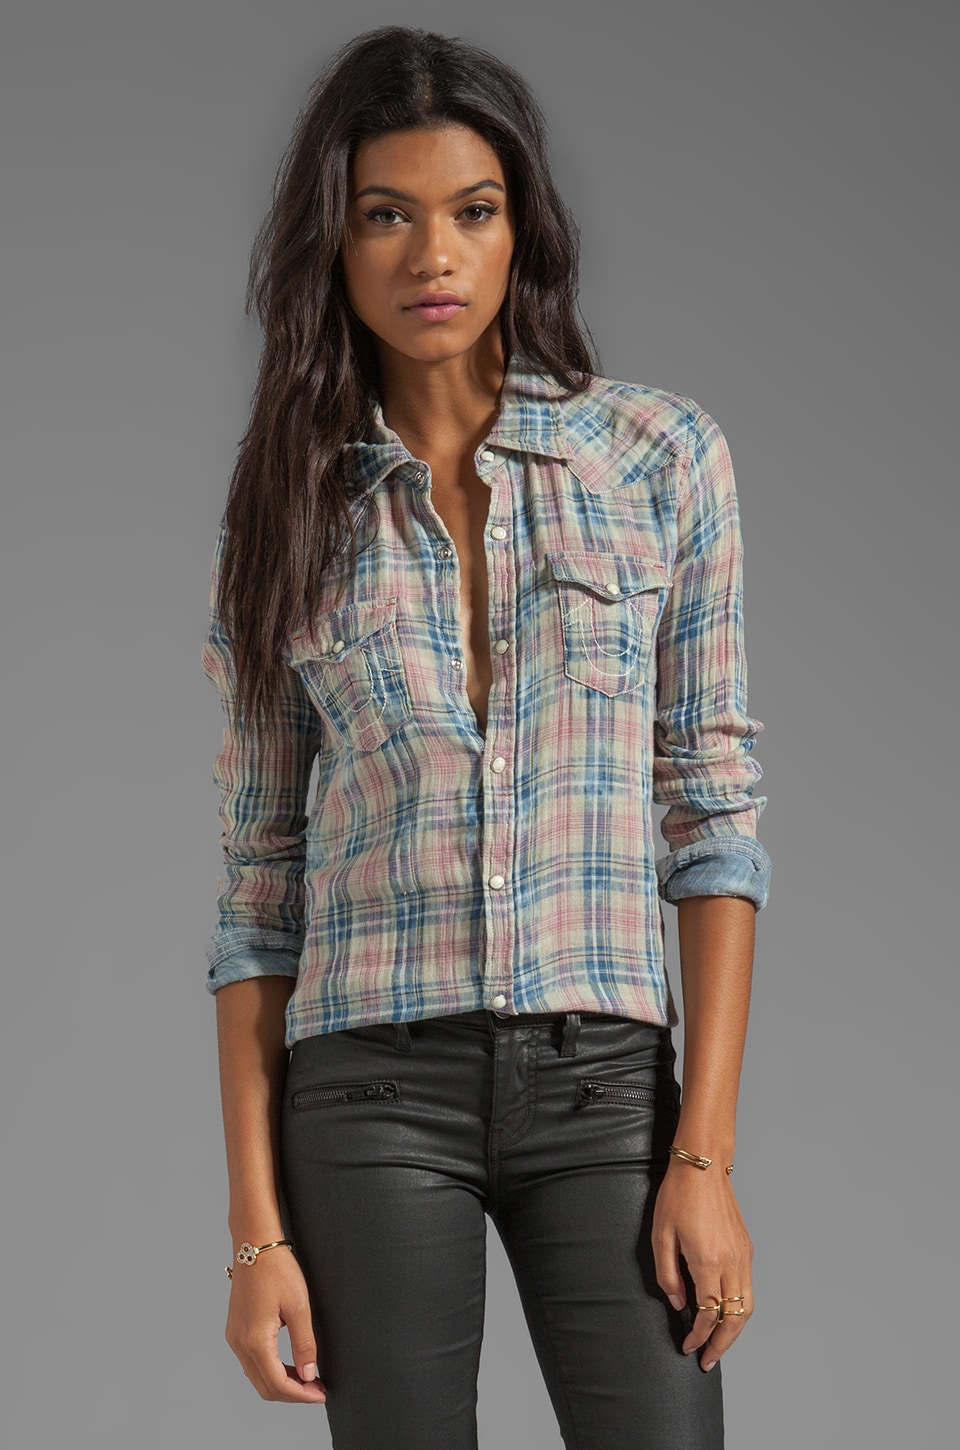 True Religion Georgia Shirt in Thistle